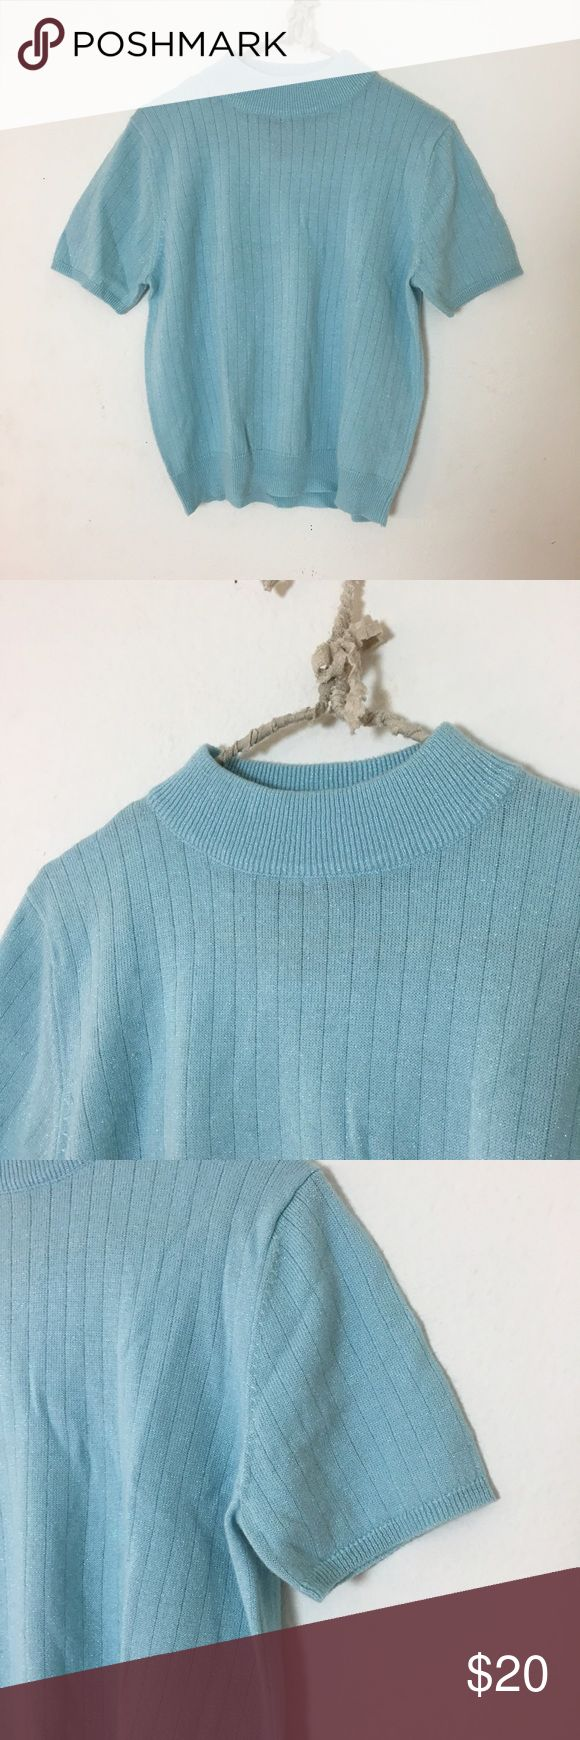 Baby Blue Sparkly Crop Top Super cute turtleneck style crop top. Sparkly baby blue no flaws Brandy Melville Tops Crop Tops